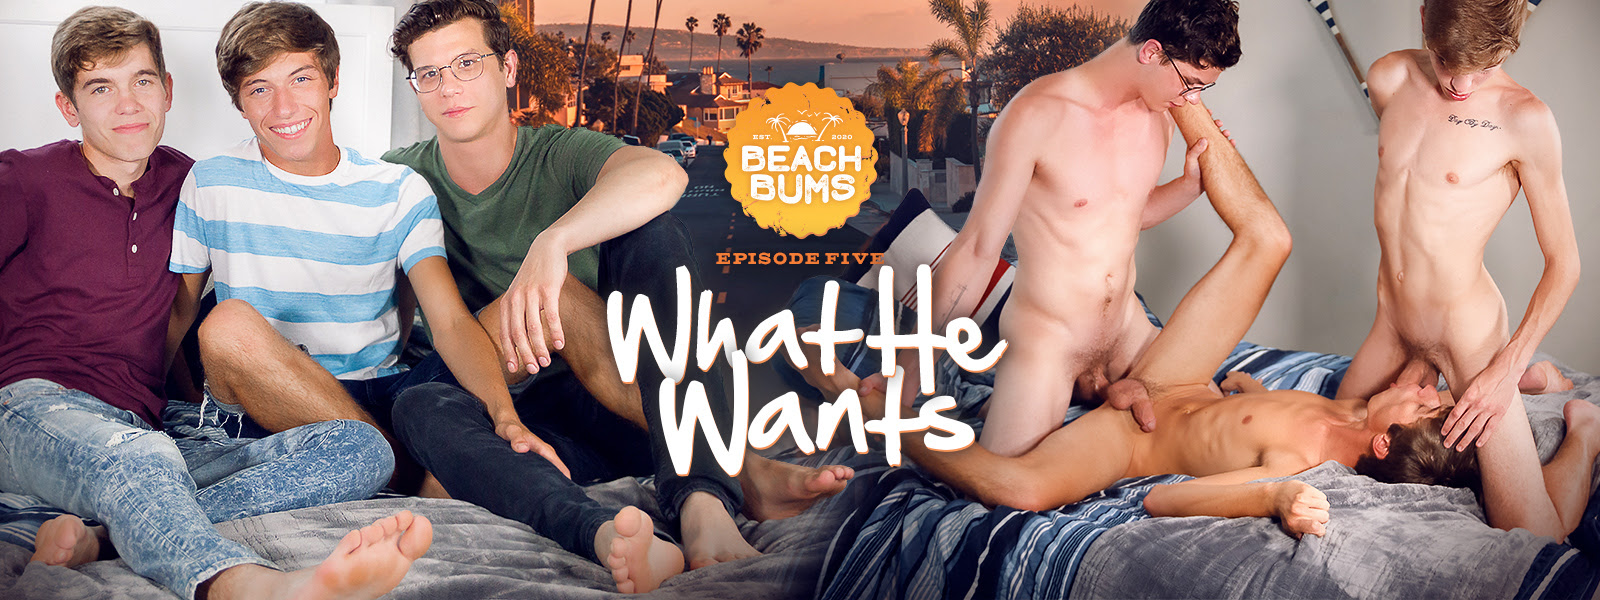 Beach Bums | Ep. 5 What He Wants